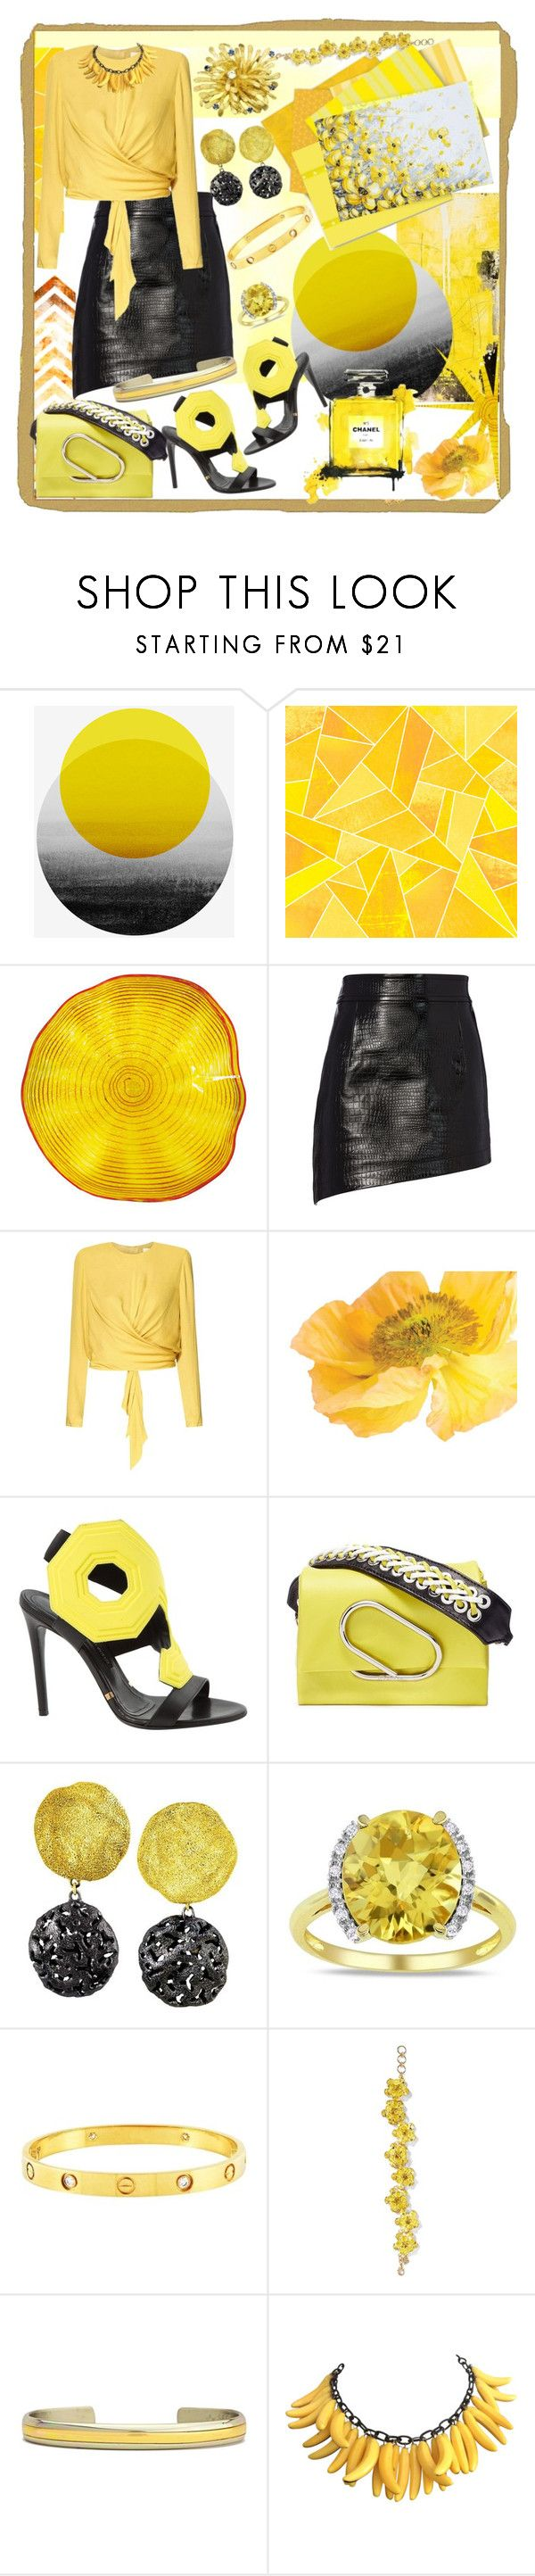 """Pop of Yellow"" by jeneric2015 ❤ liked on Polyvore featuring Viz Glass, Helmut Lang, Paisie, Gianmarco Lorenzi, 3.1 Phillip Lim, Alex Soldier, Miadora, Cartier, Sergio Lub and PopsOfYellow"